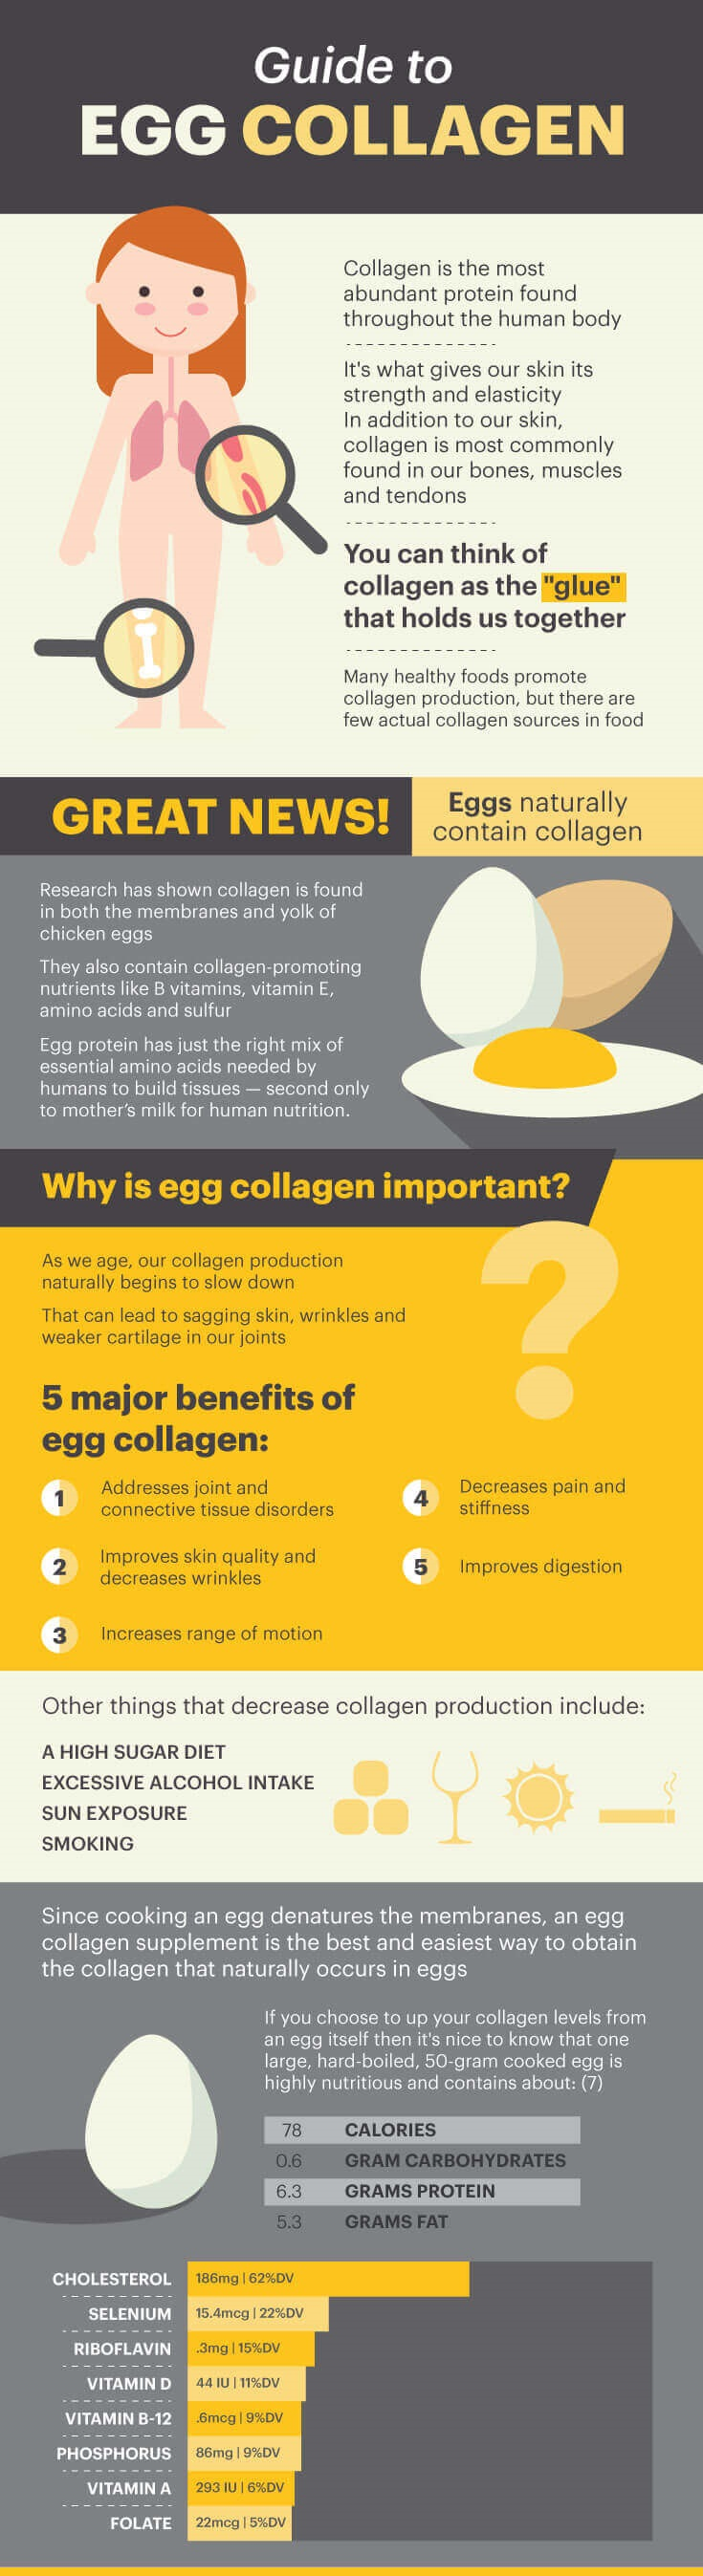 Collagen egg www.getcollagen.co.za